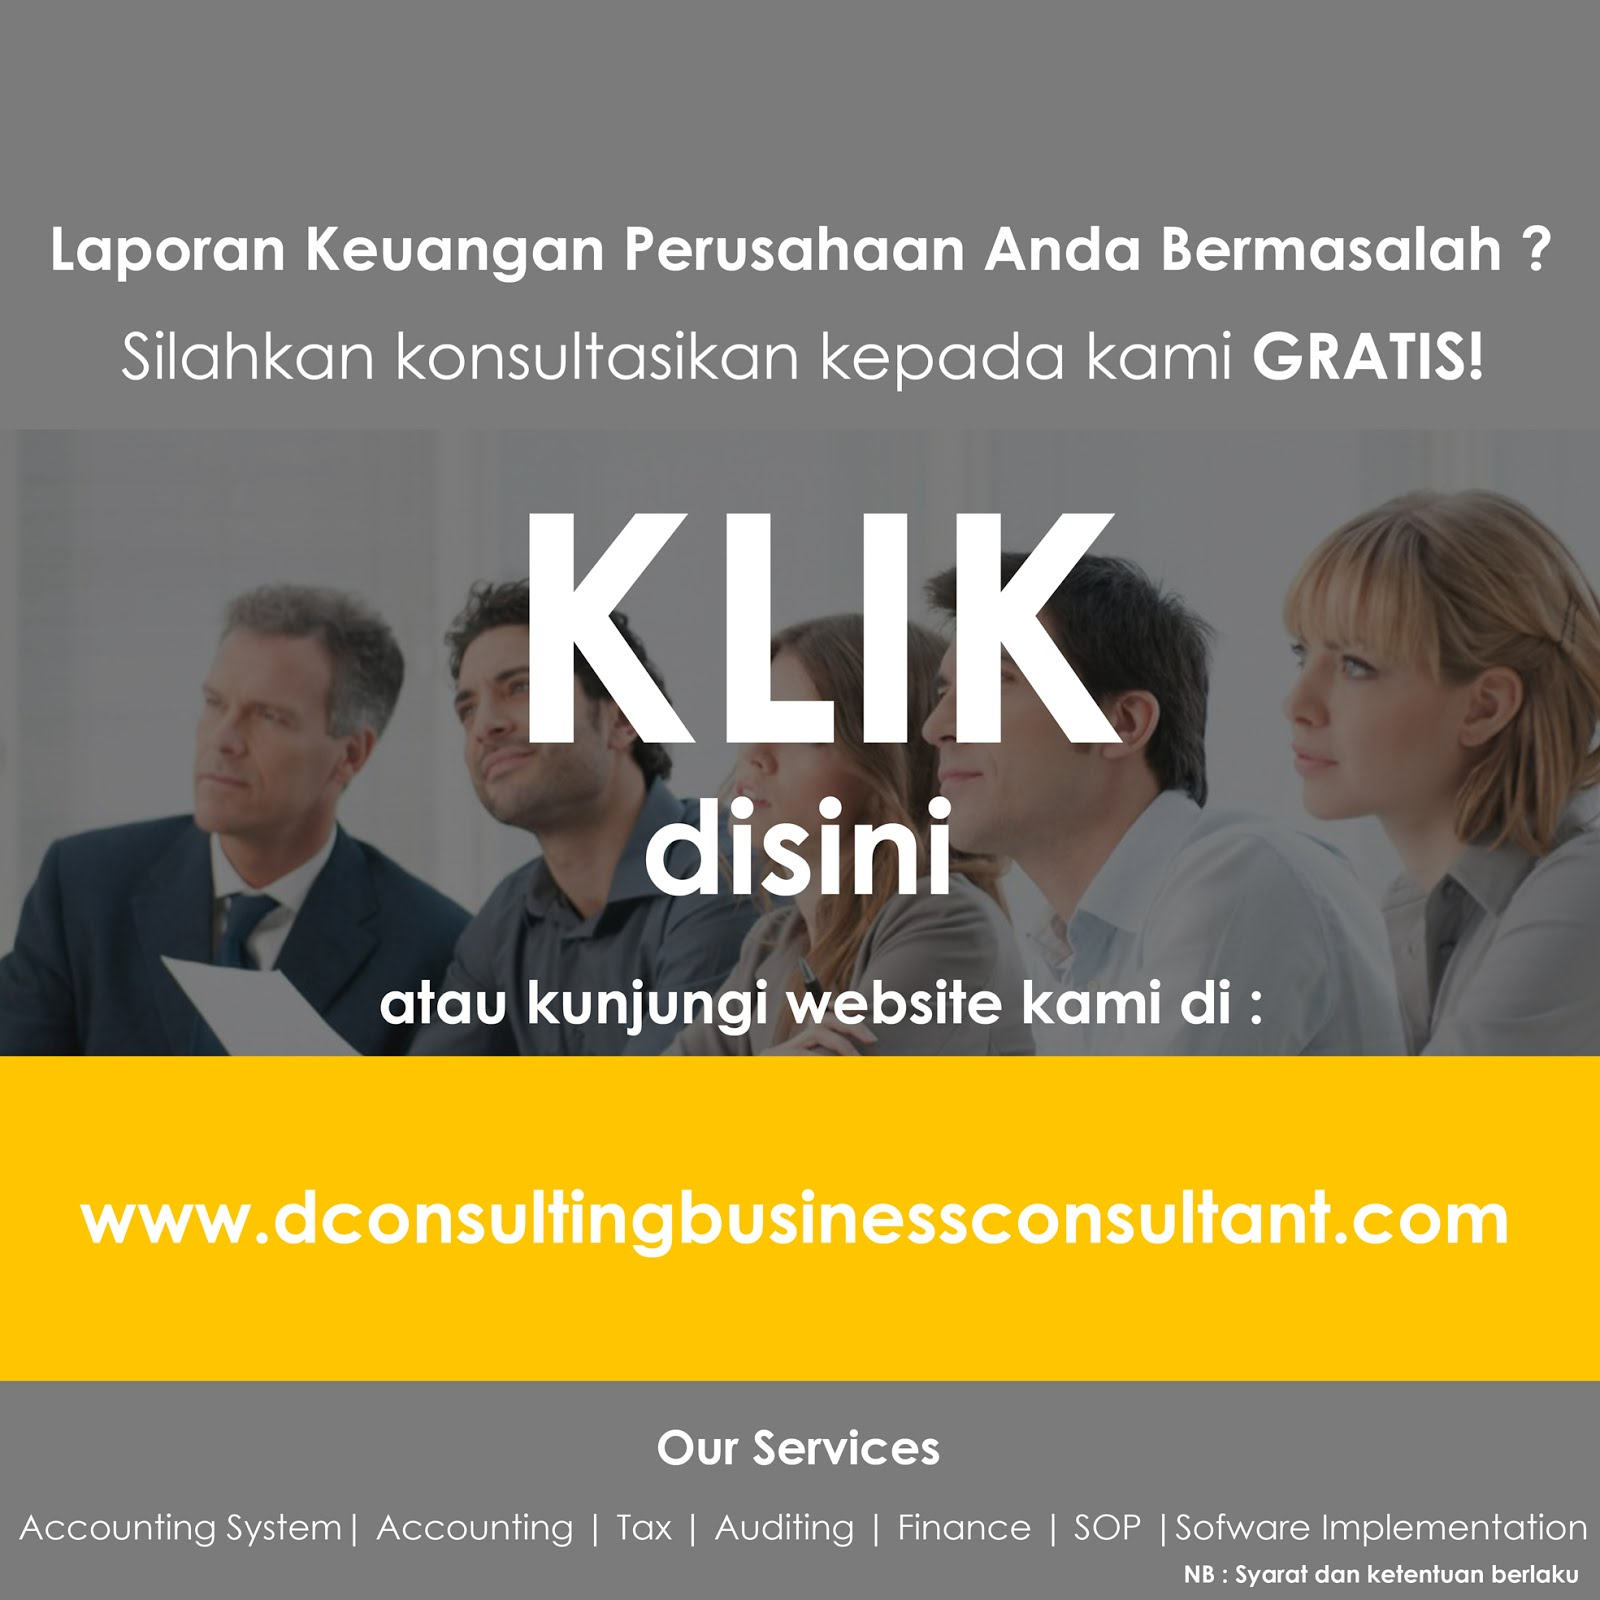 D'consulting Business Consultant